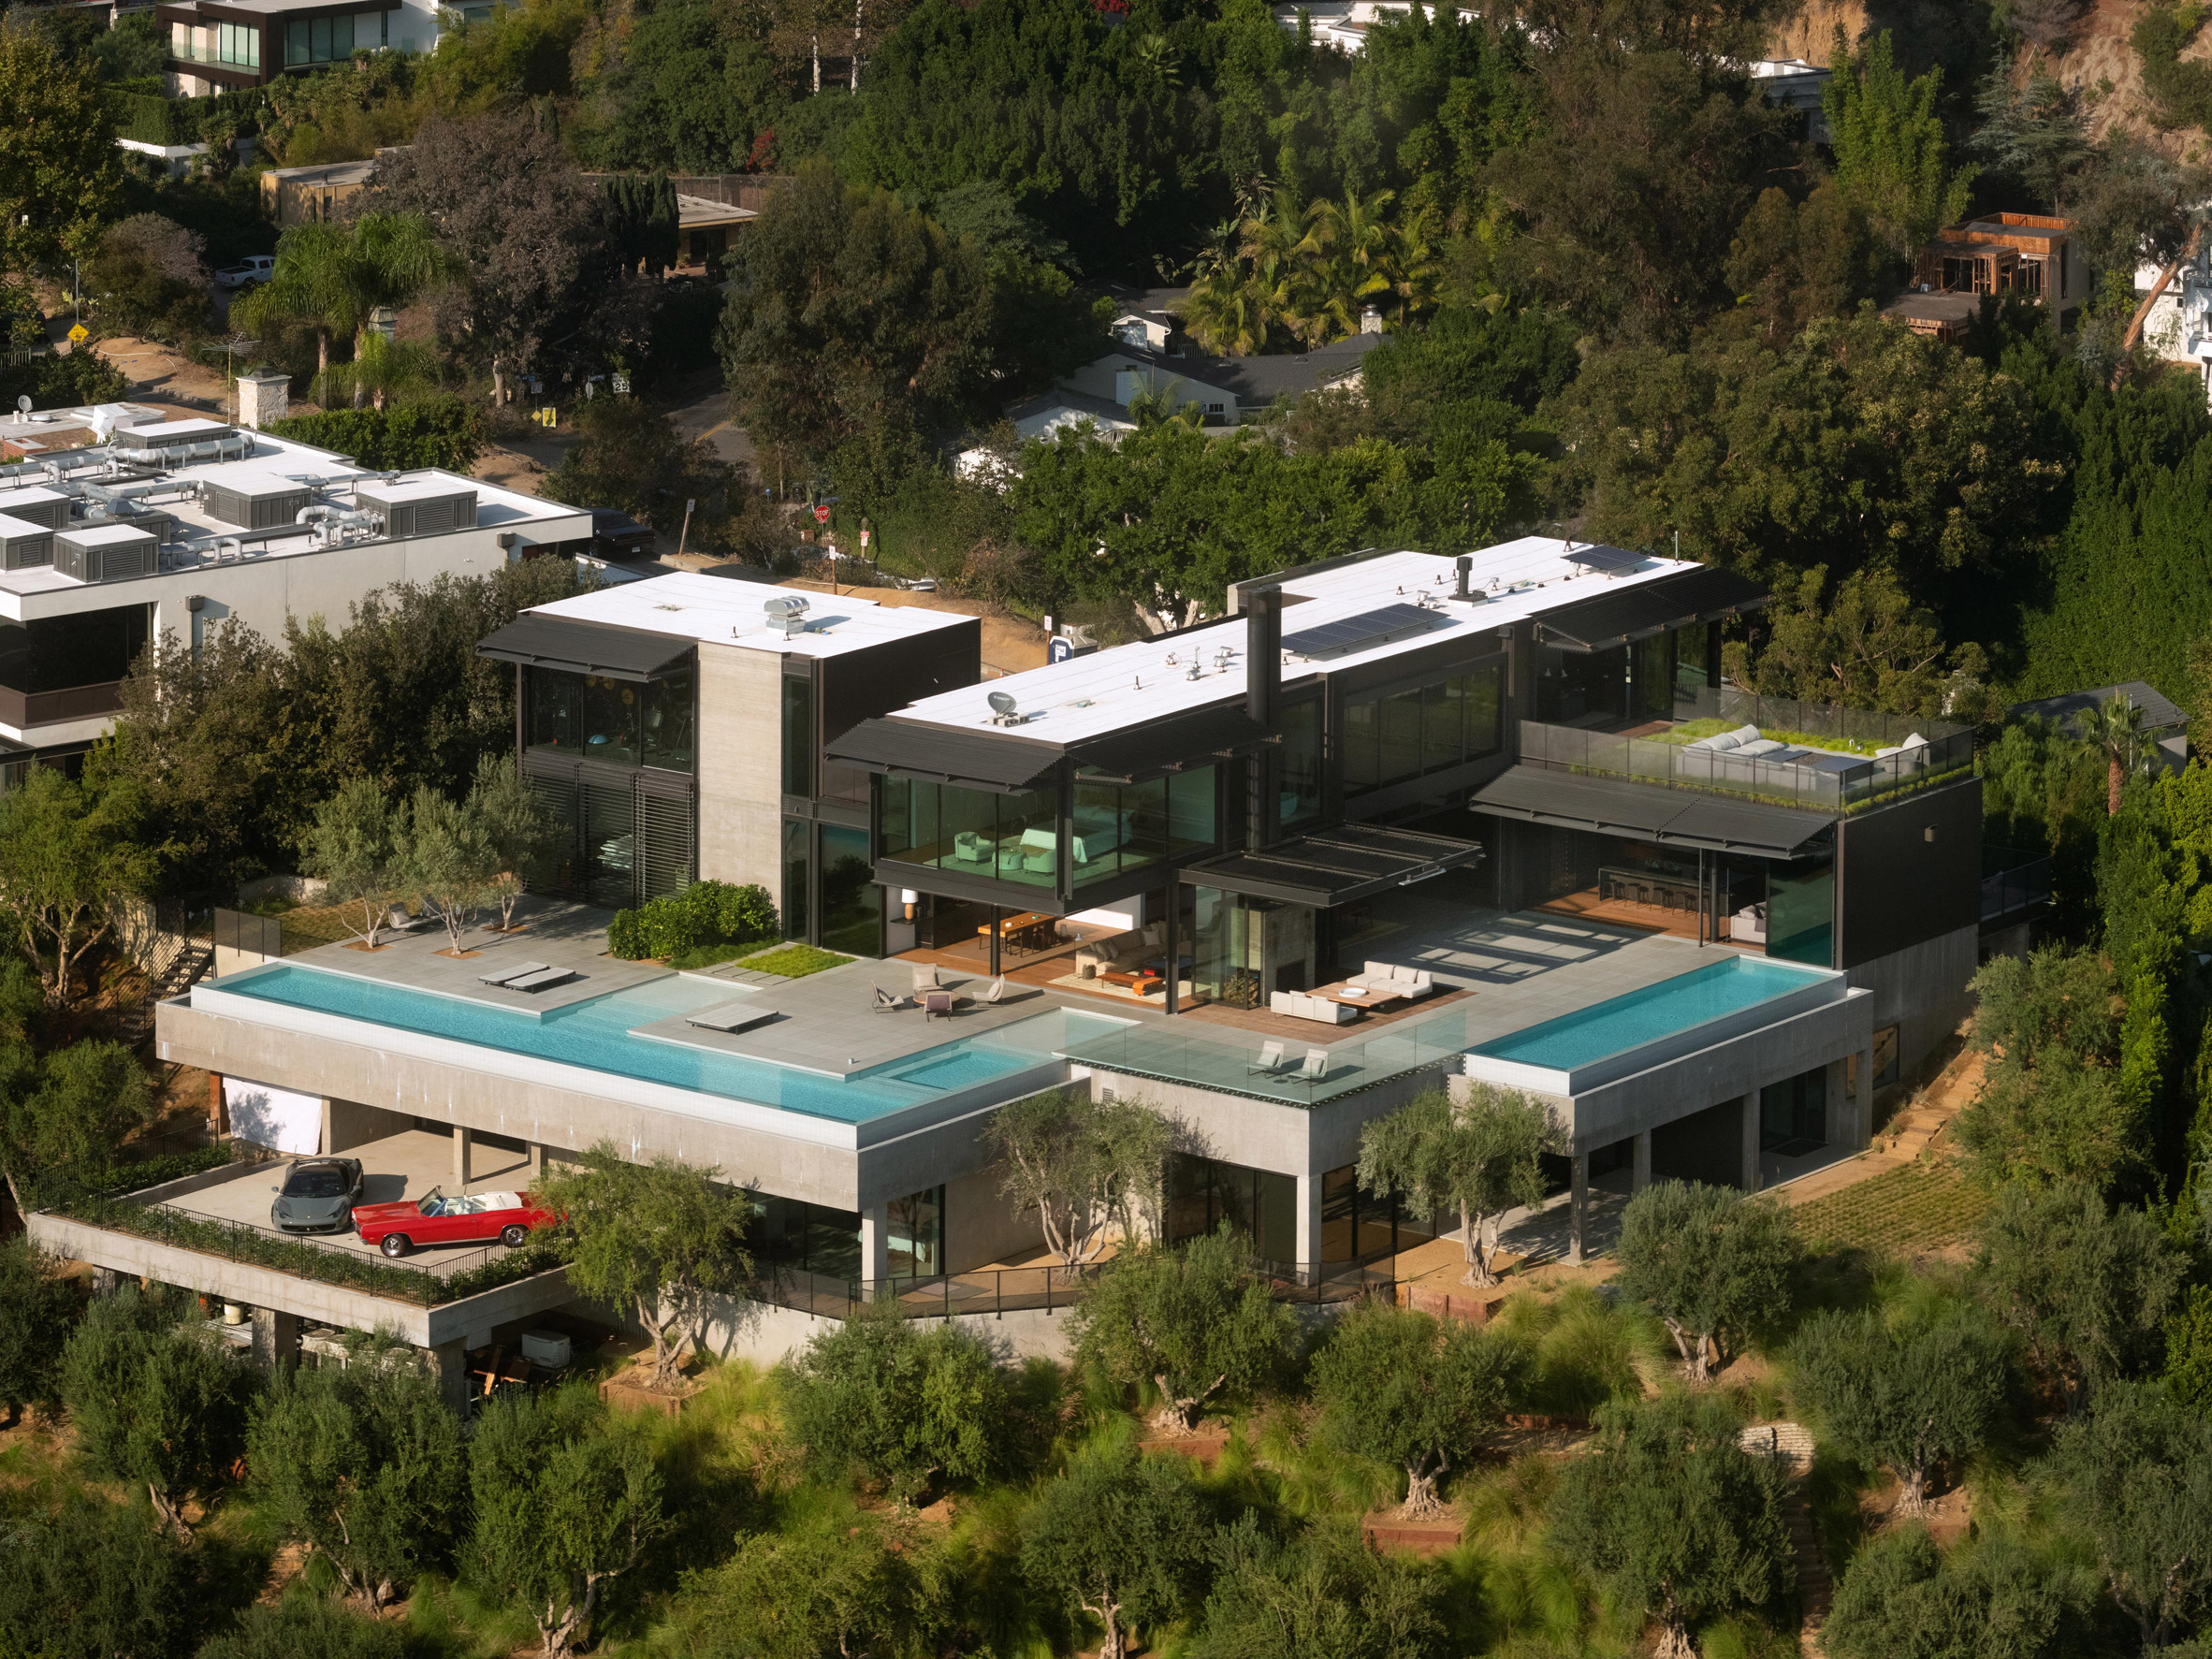 collywood-house-kipp-nelson-olson-kundig-los-angeles-california_dezeen_2364_col_36.jpg